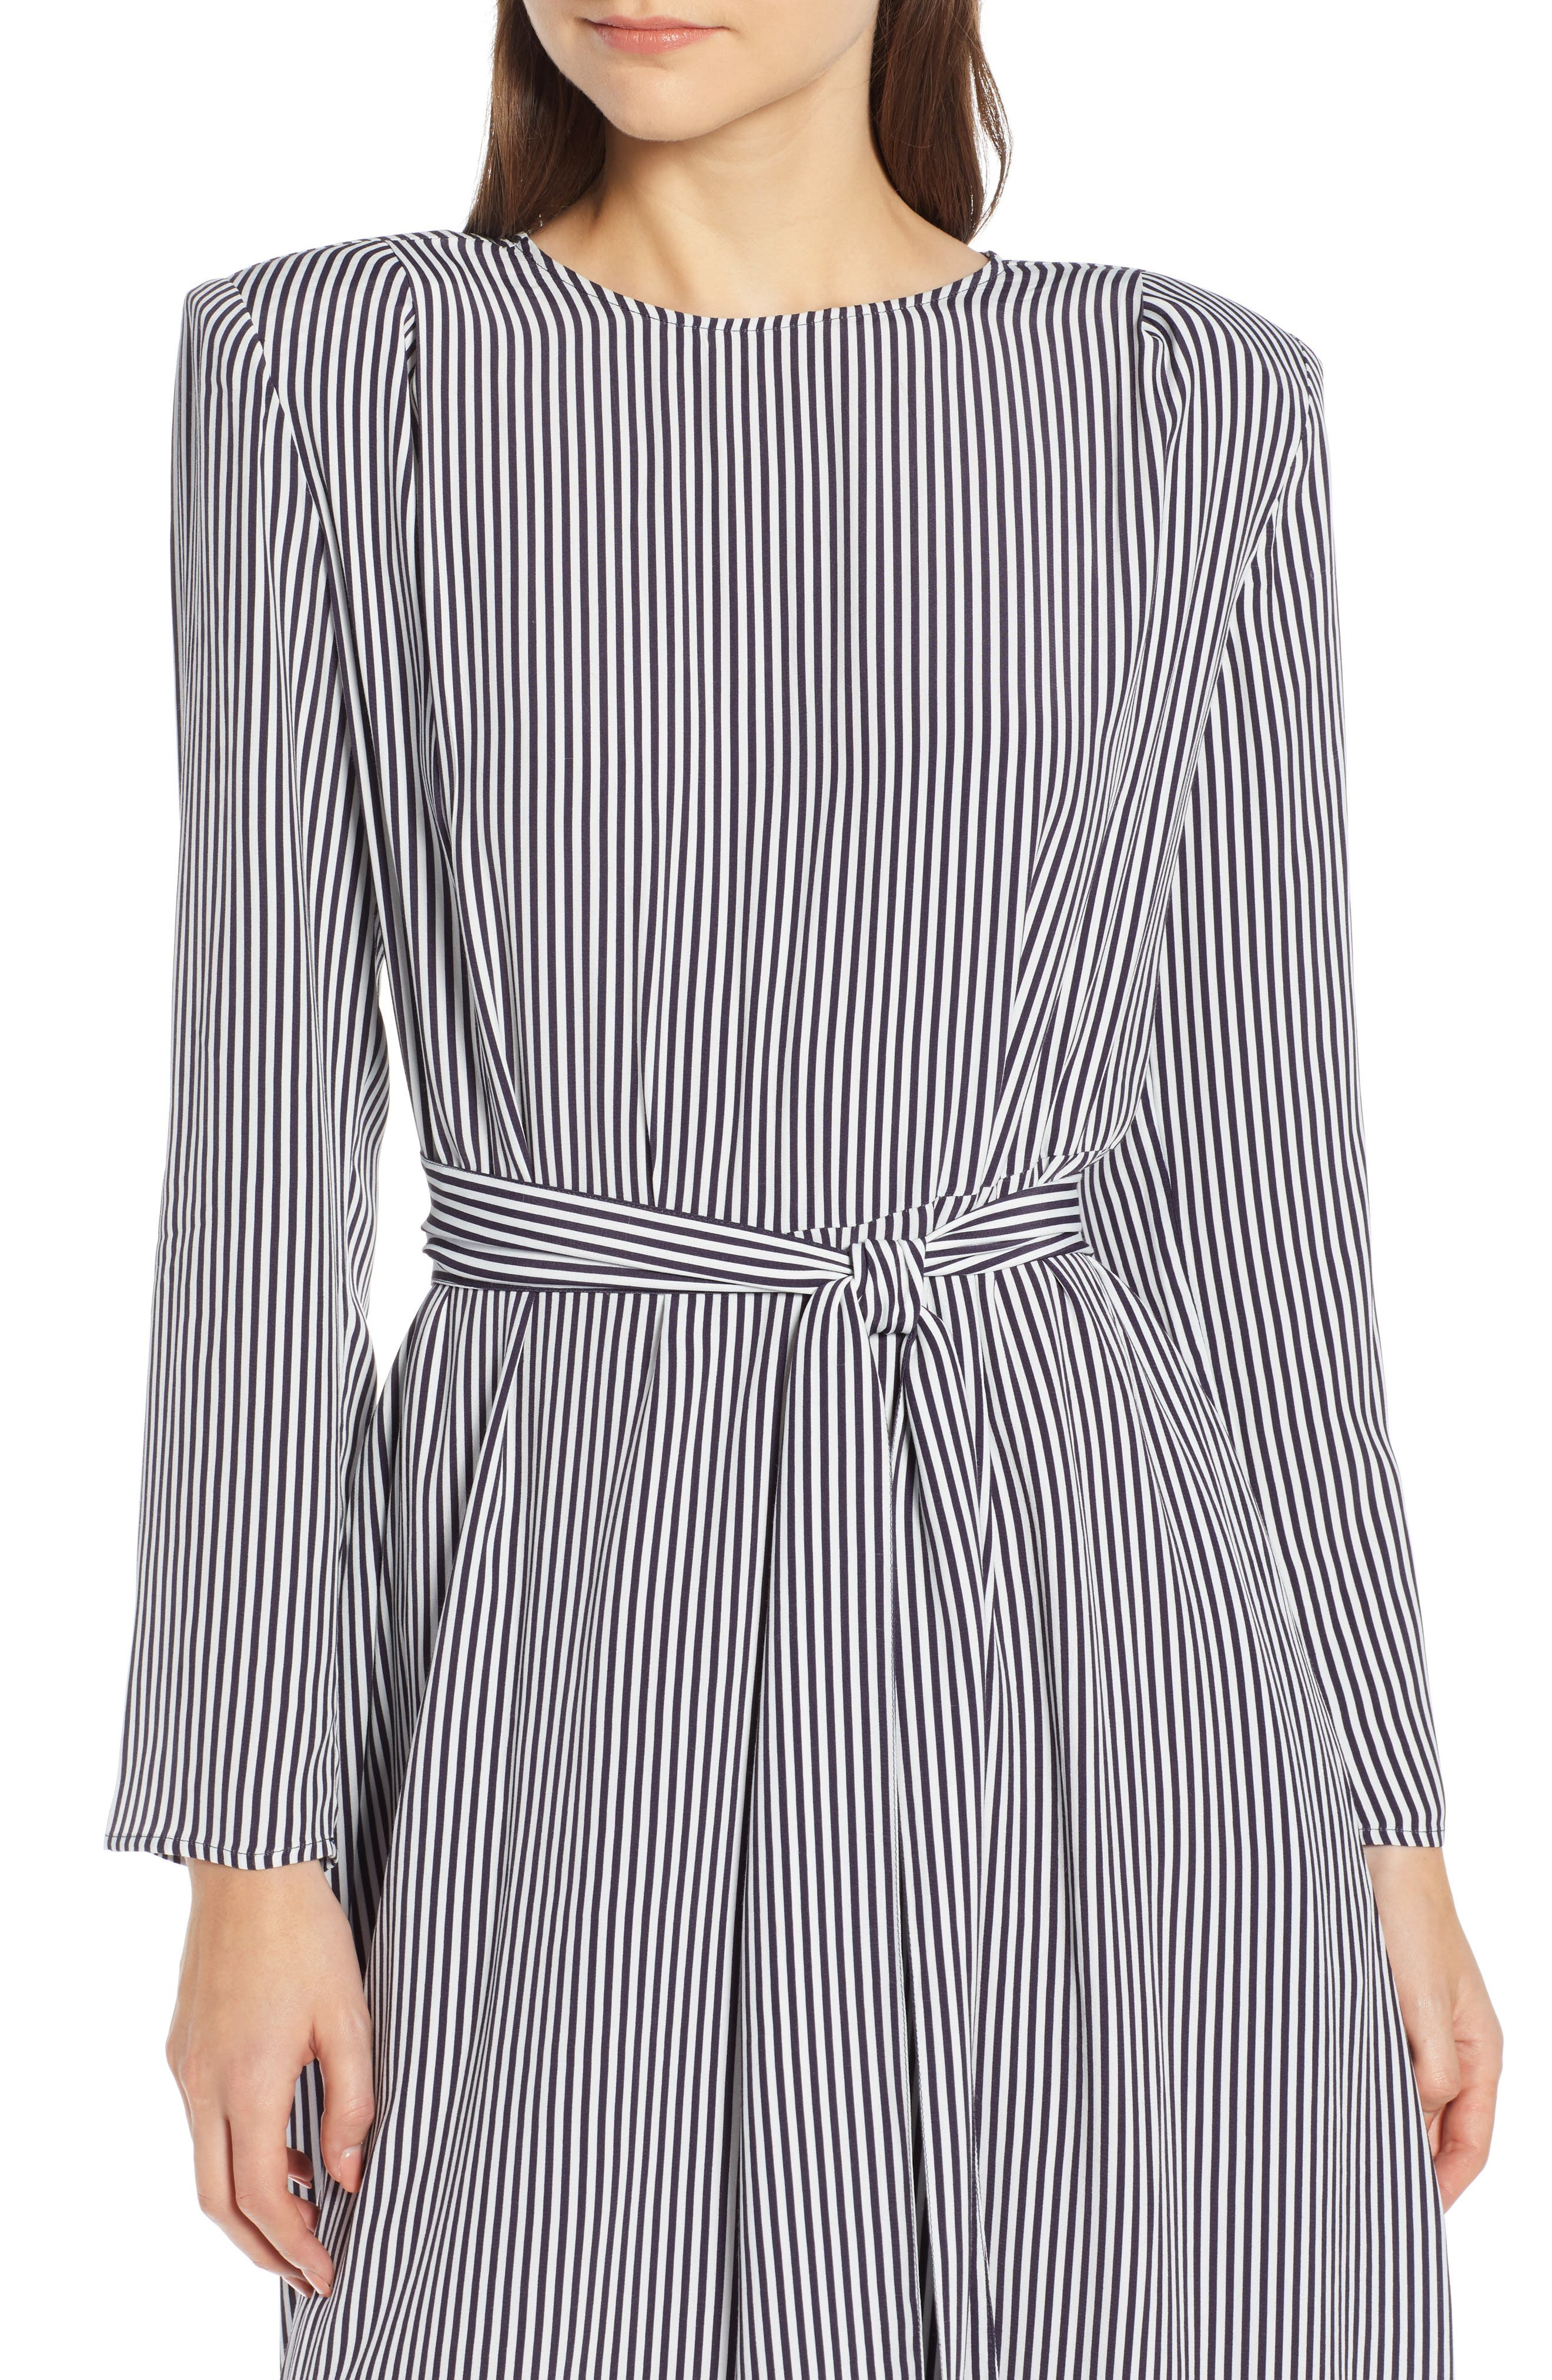 Belted Midi Dress,                             Alternate thumbnail 4, color,                             NAVY NIGHT TWO STRIPE